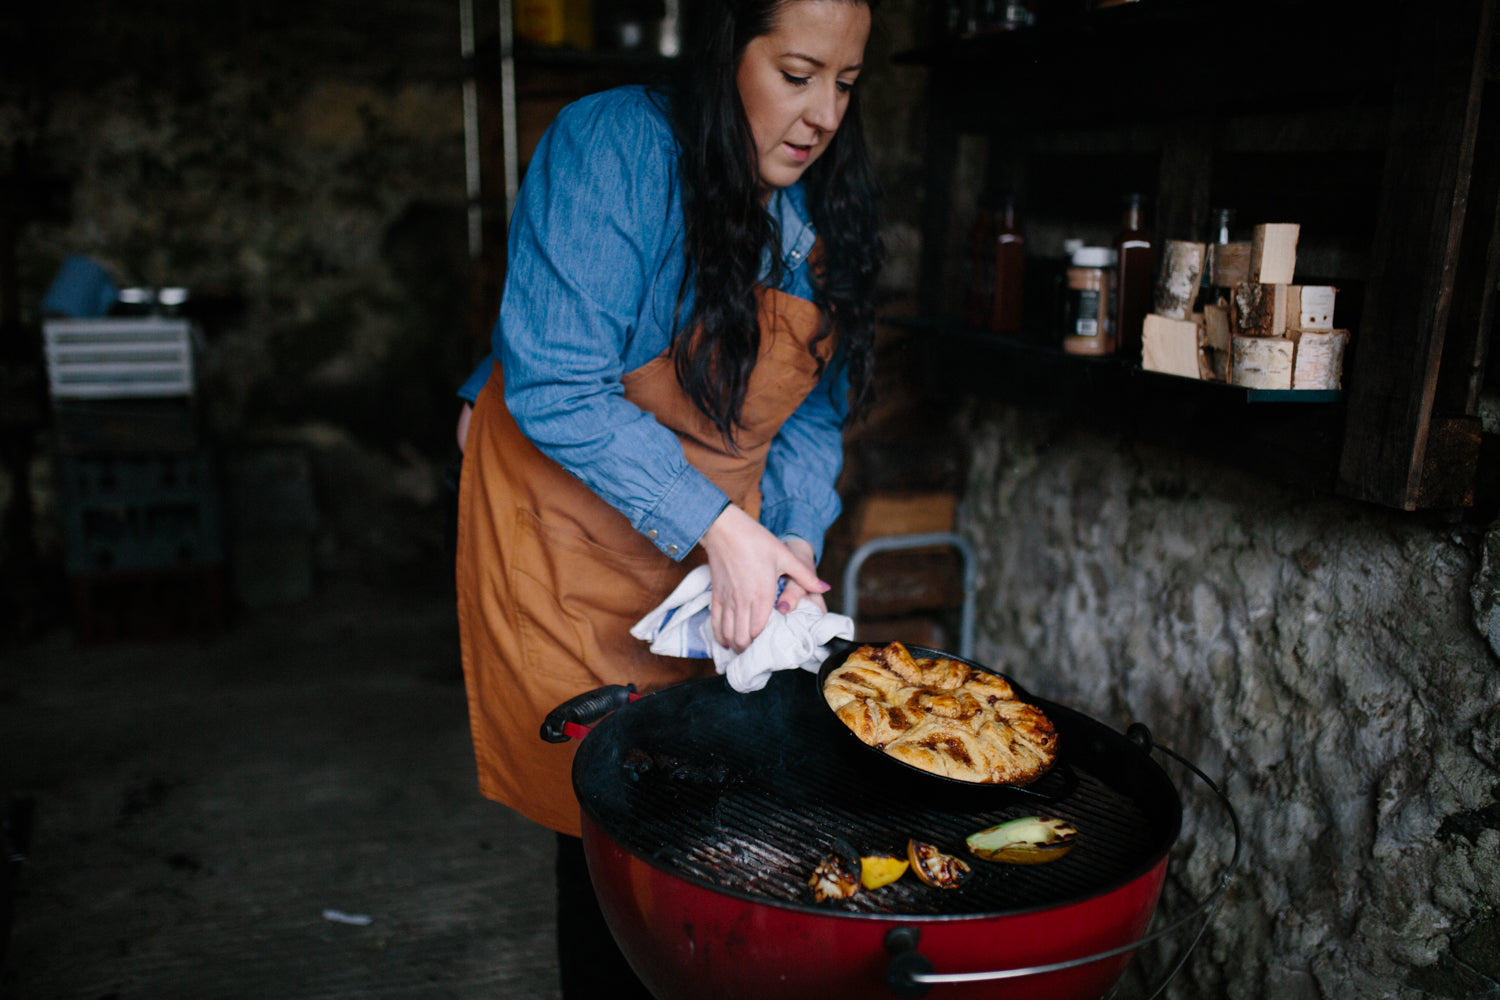 laura holding a cast iron skillet